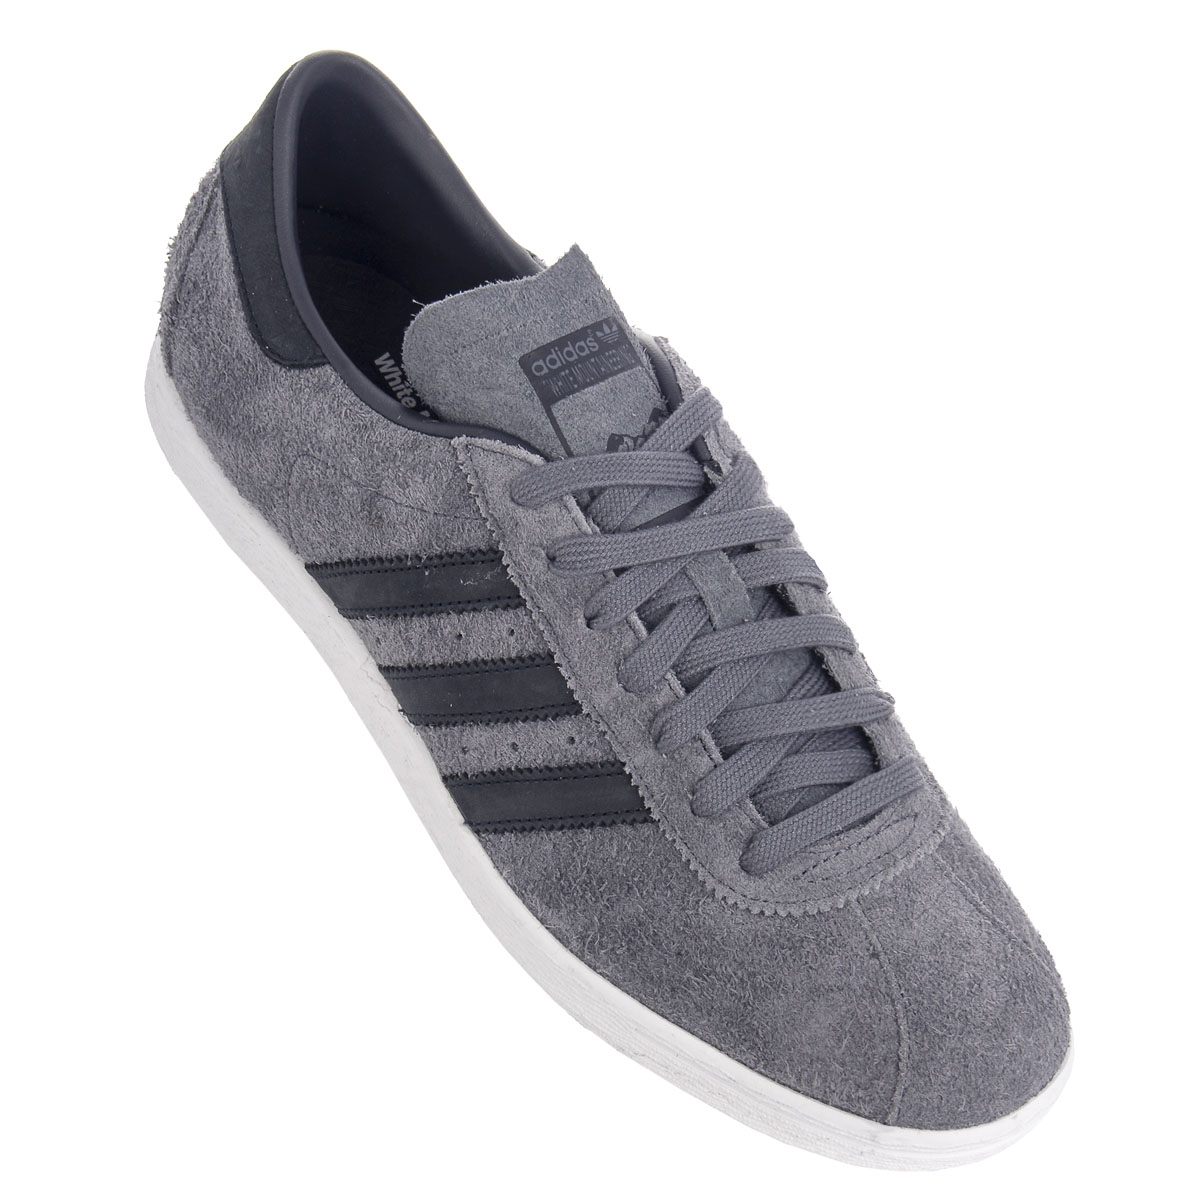 285b060aac7 Adidas Originals x White Mountaineering Tobacco Sneaker Grey Leather ...